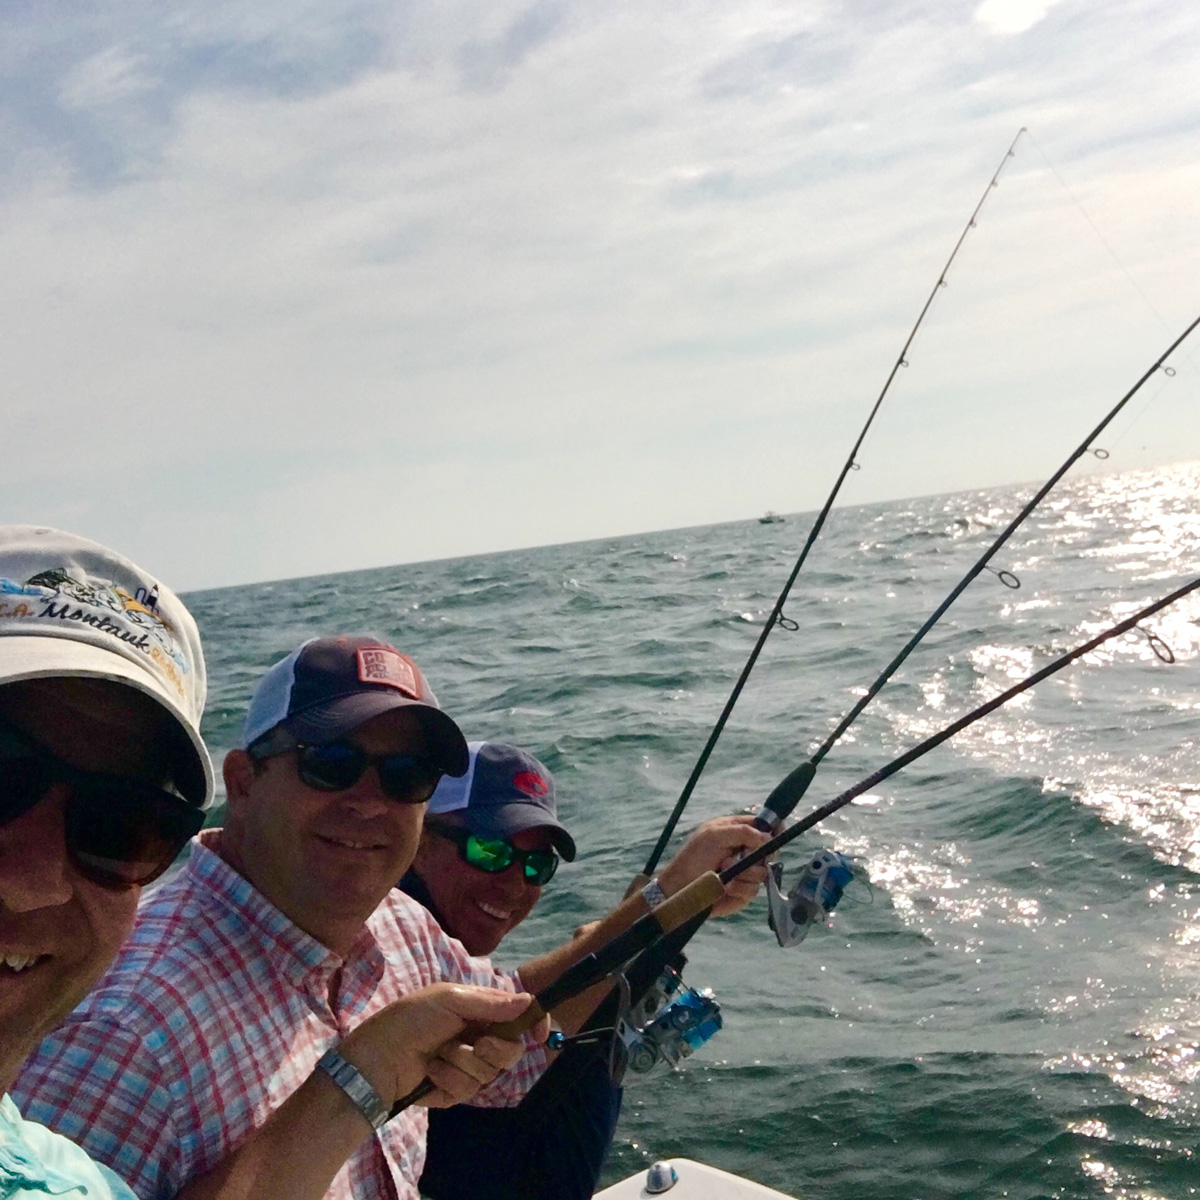 Kerry Heffernan and John Besh Fishing in the Hamptons